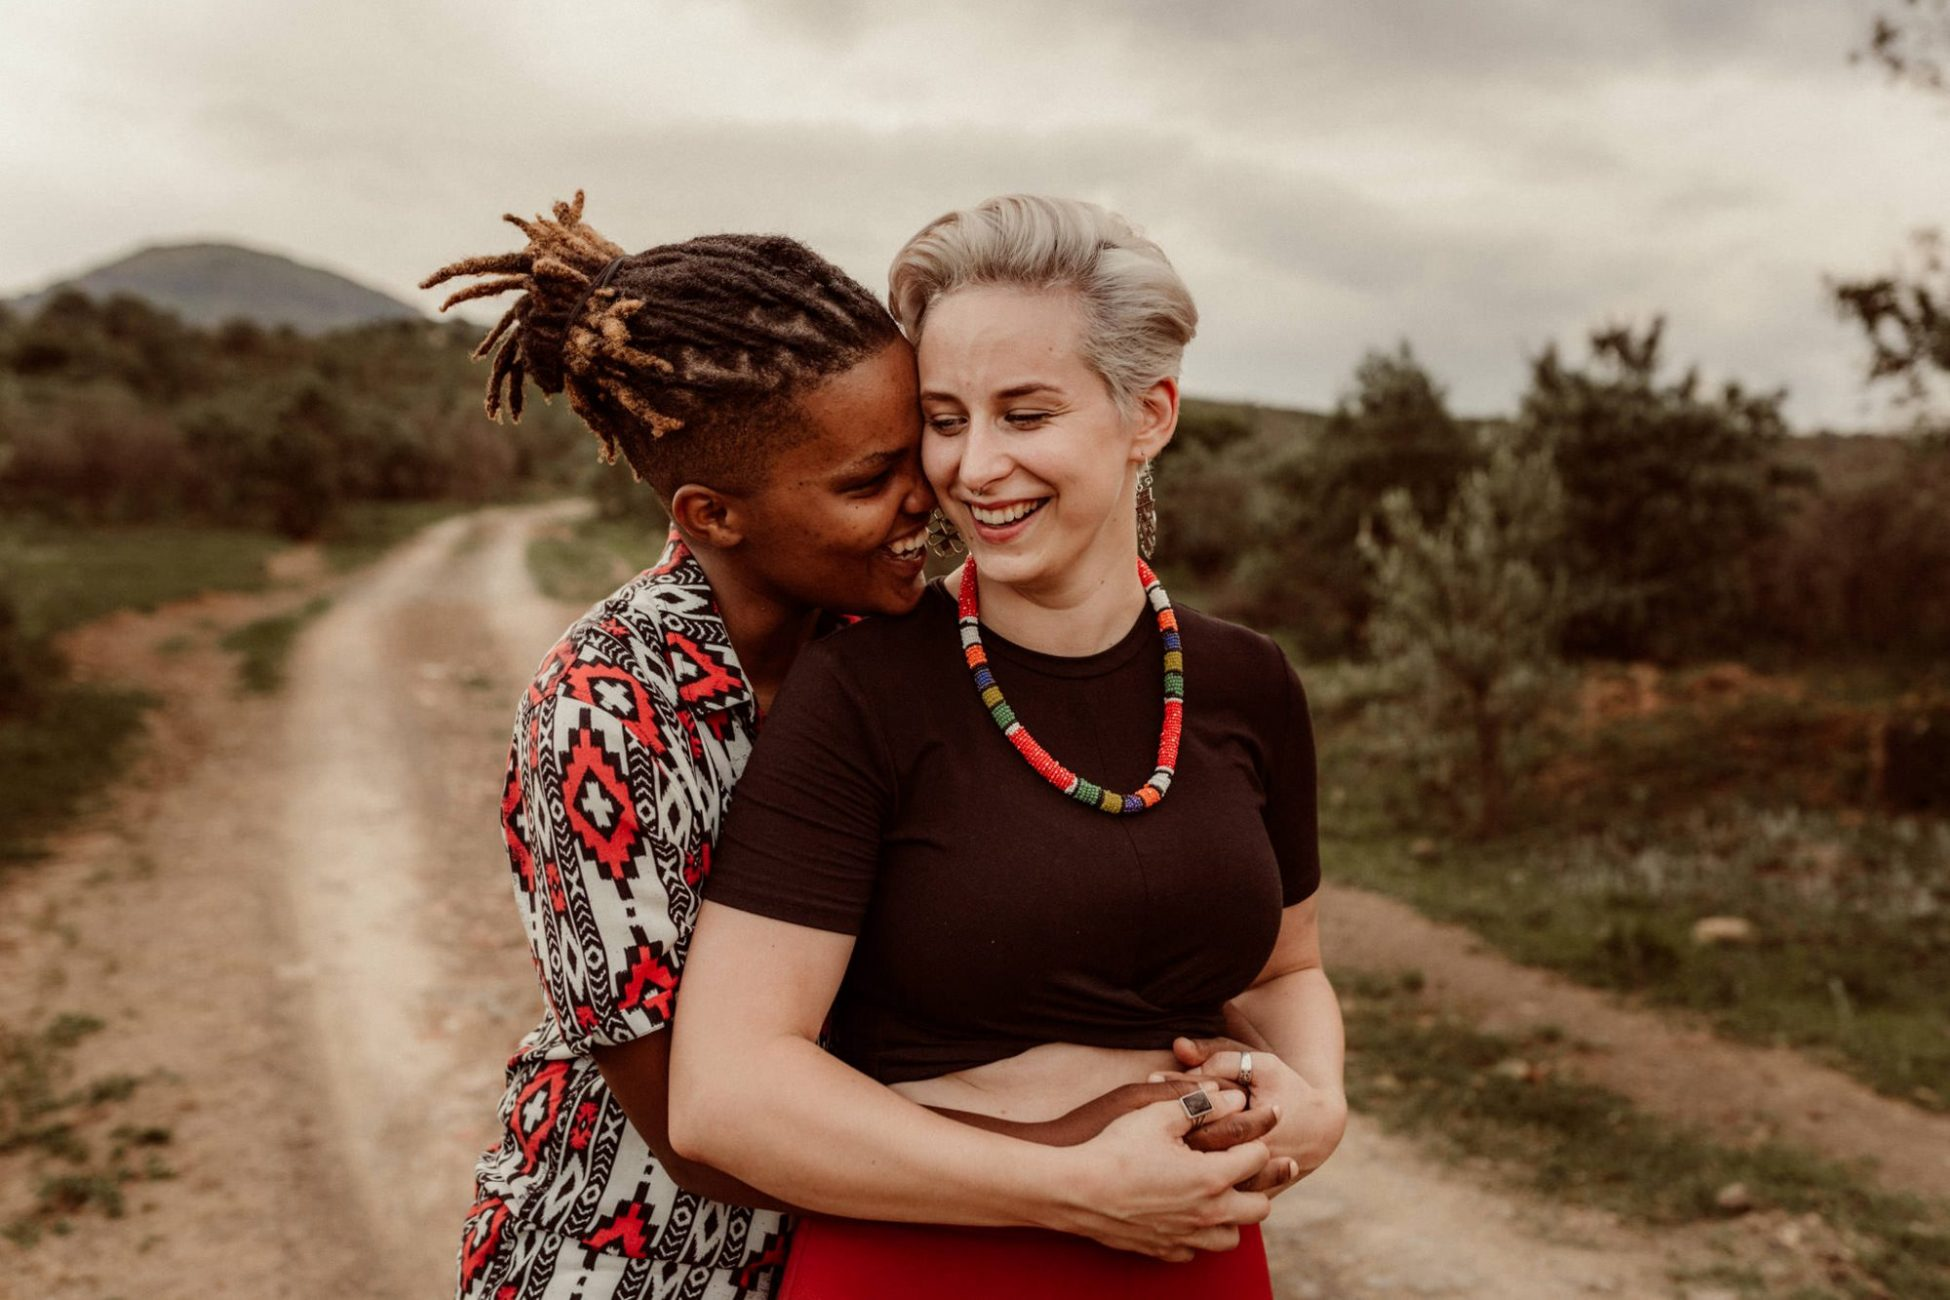 couple-lgbt-engagement_photoshoot-cr8tiveduo-Drakensberg_mountains_kwazulunatal_zee-lizzie_laugh-love